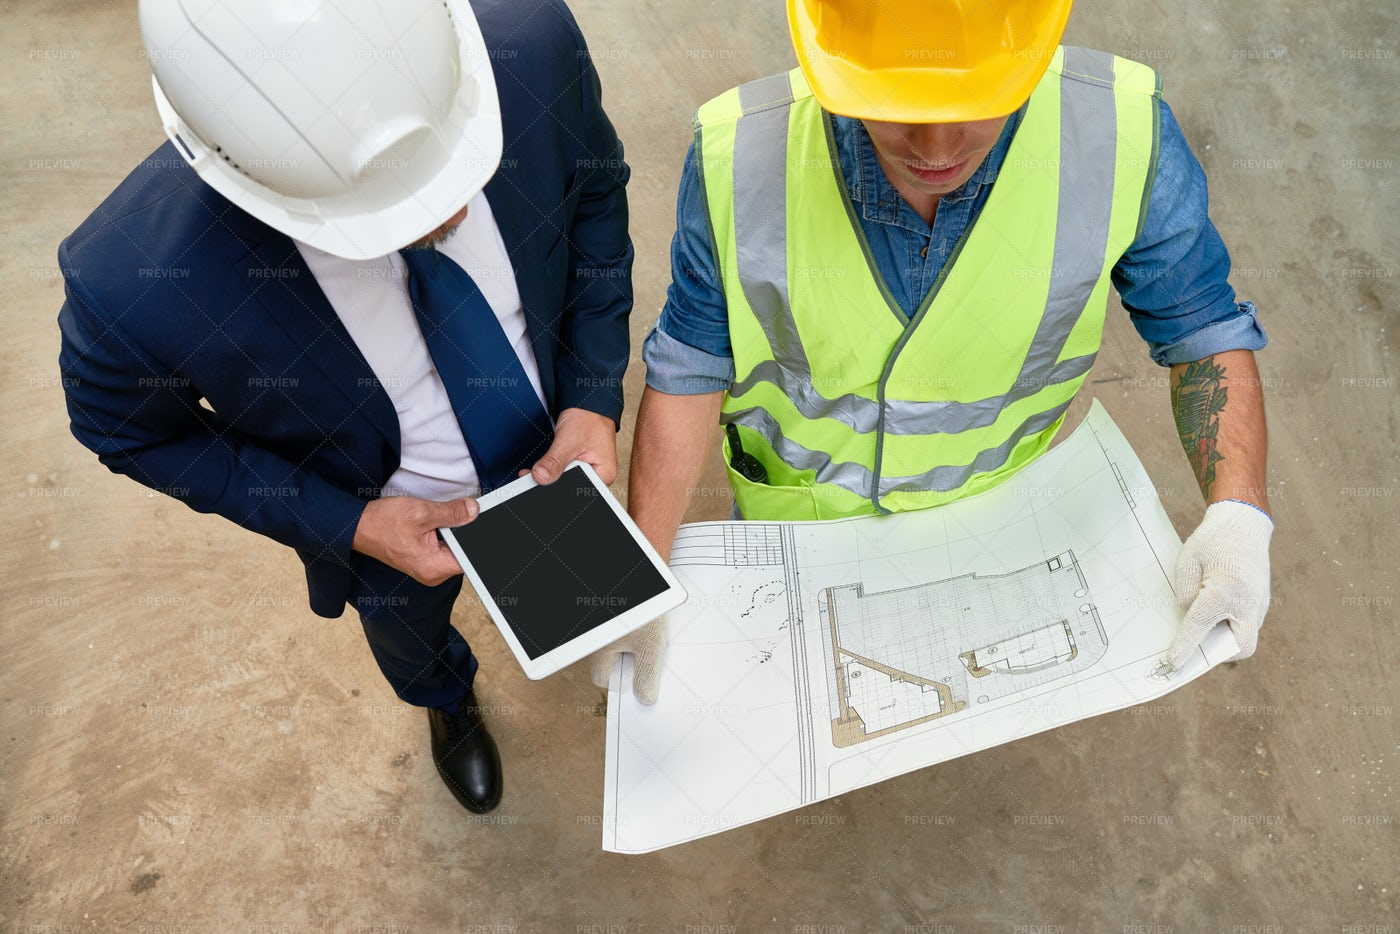 Working Meeting Of Foreman And...: Stock Photos